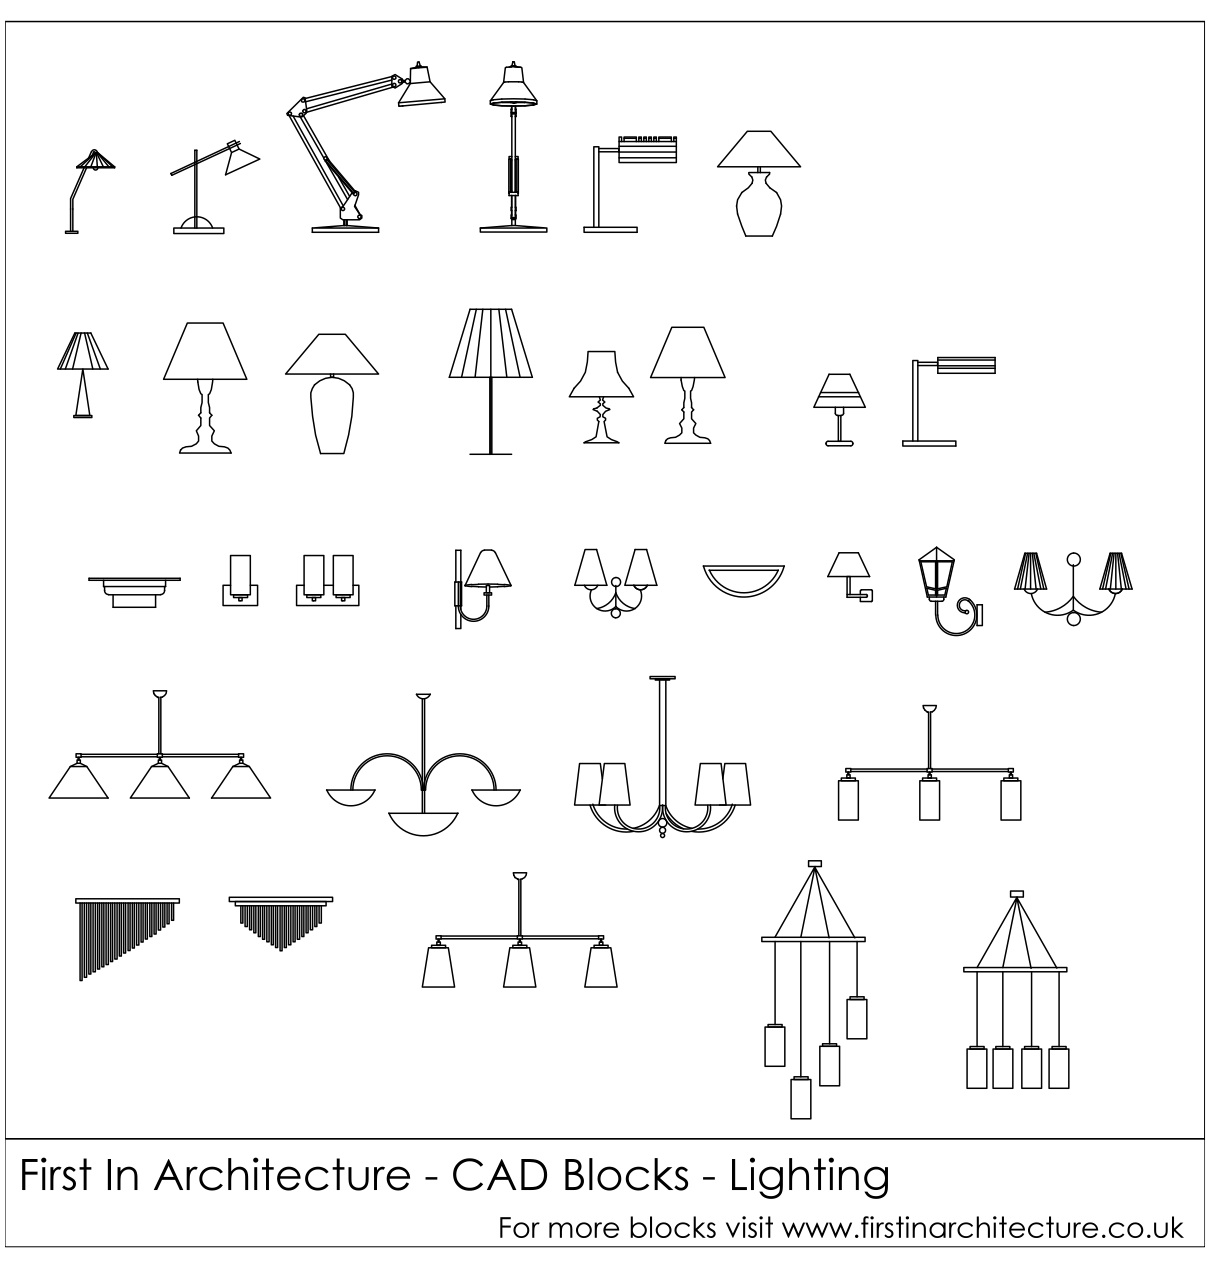 Free CAD Blocks - Lighting First In Architecture